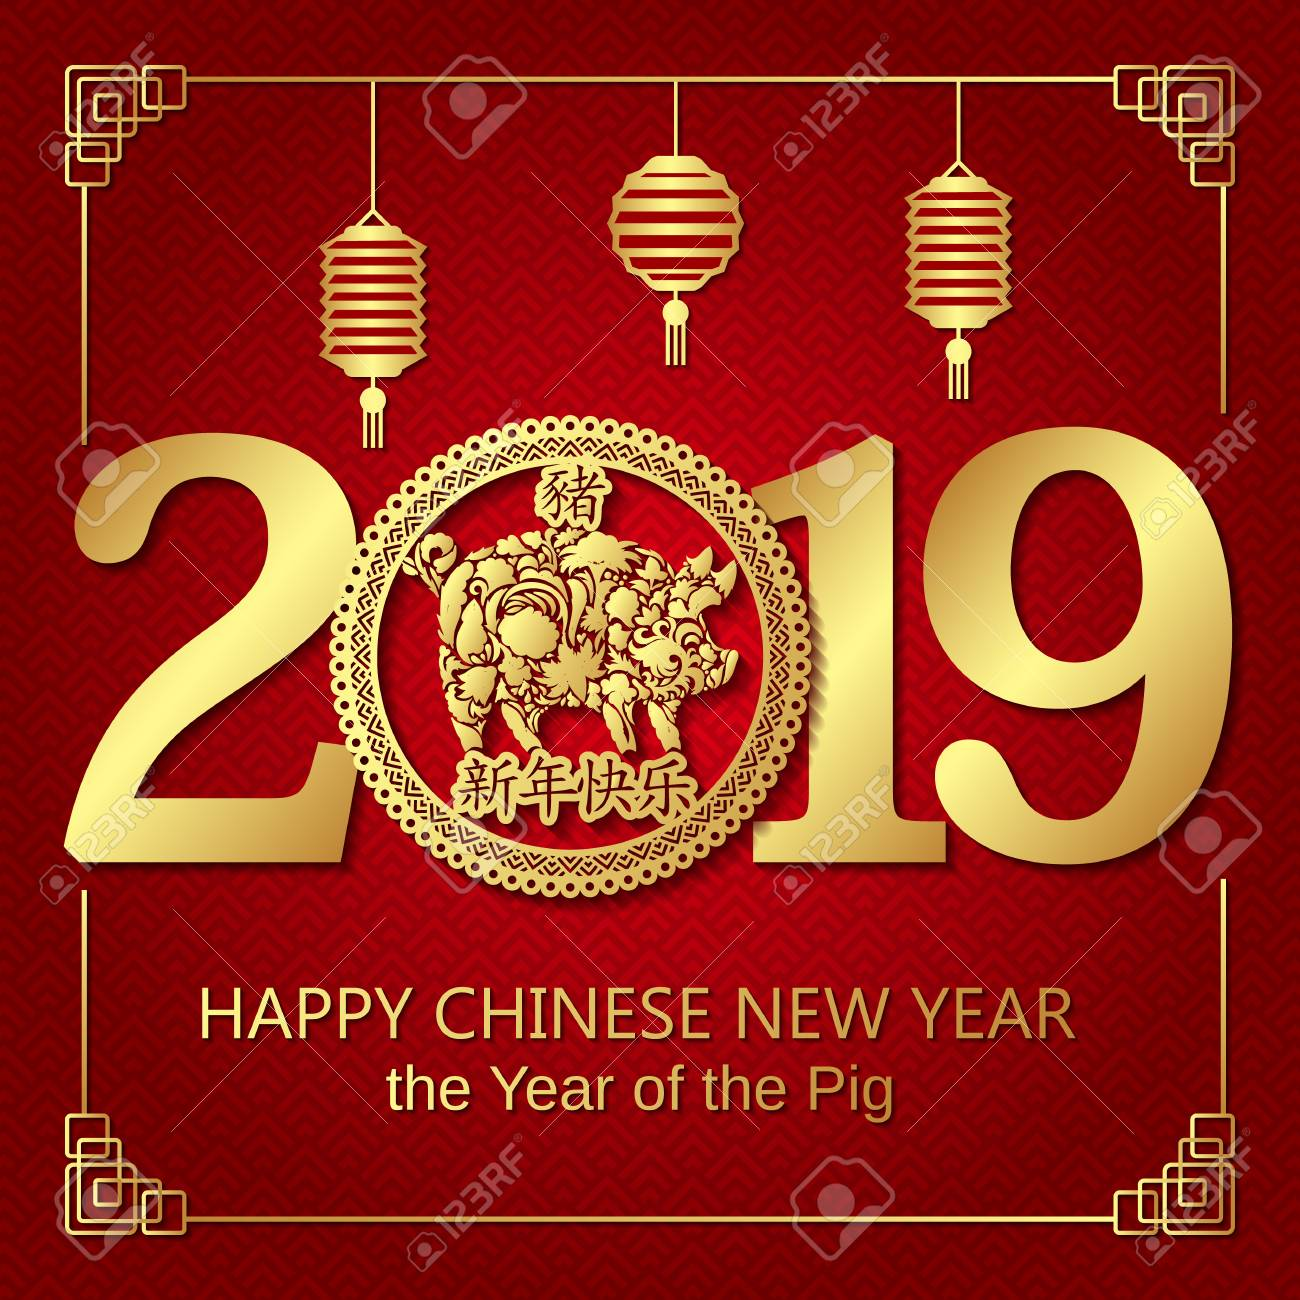 Image result for year of the pig zodiac sign 2019